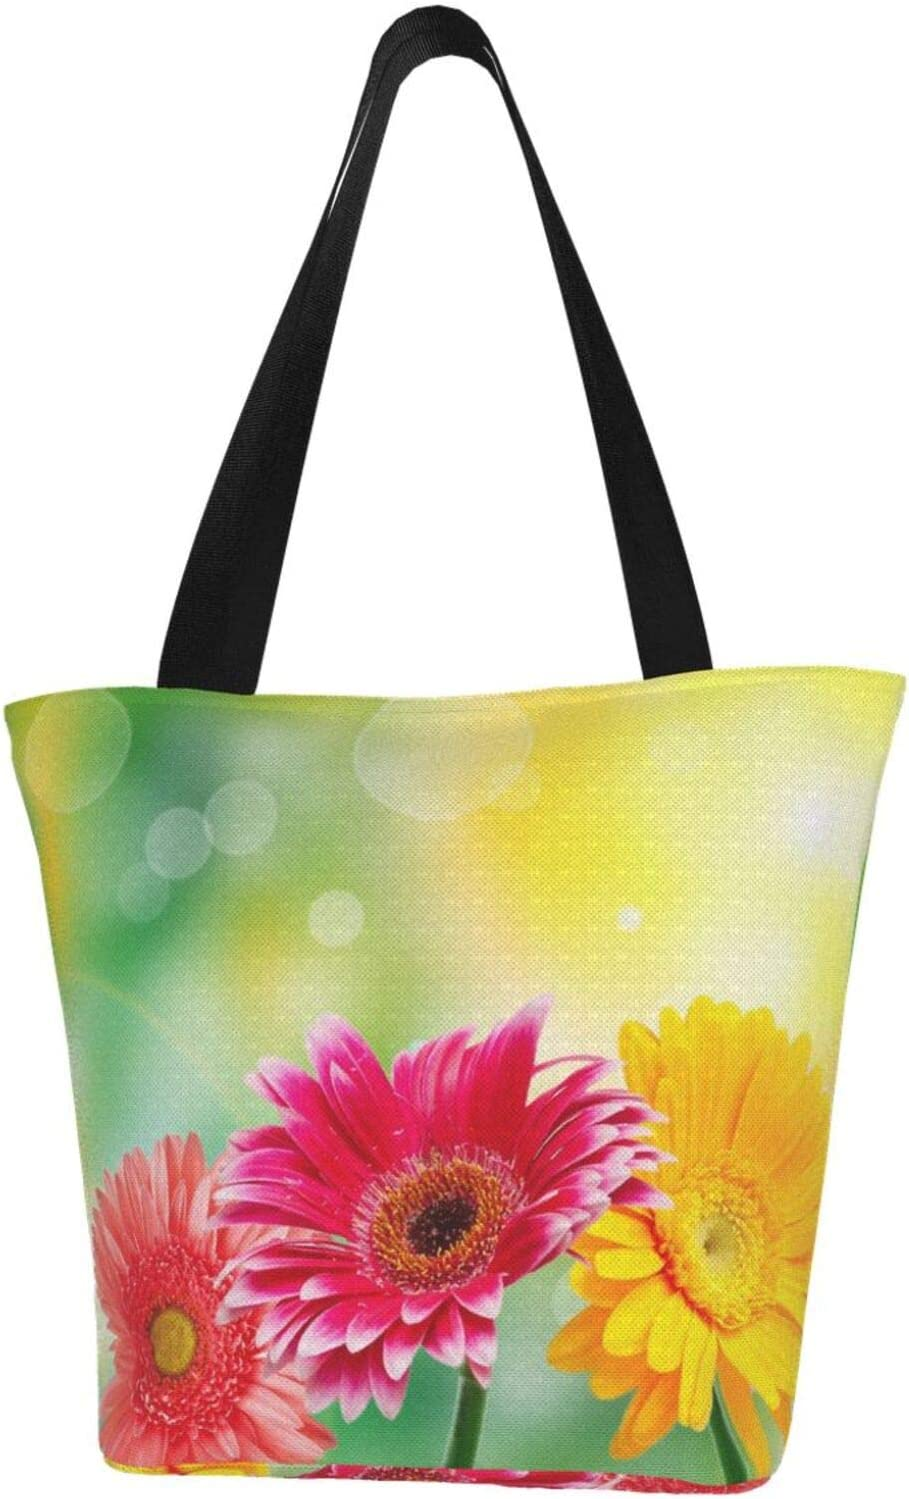 AKLID Colored Daisy Extra Ranking TOP19 Sales of SALE items from new works Large Canvas Water Bag Resistant Tote